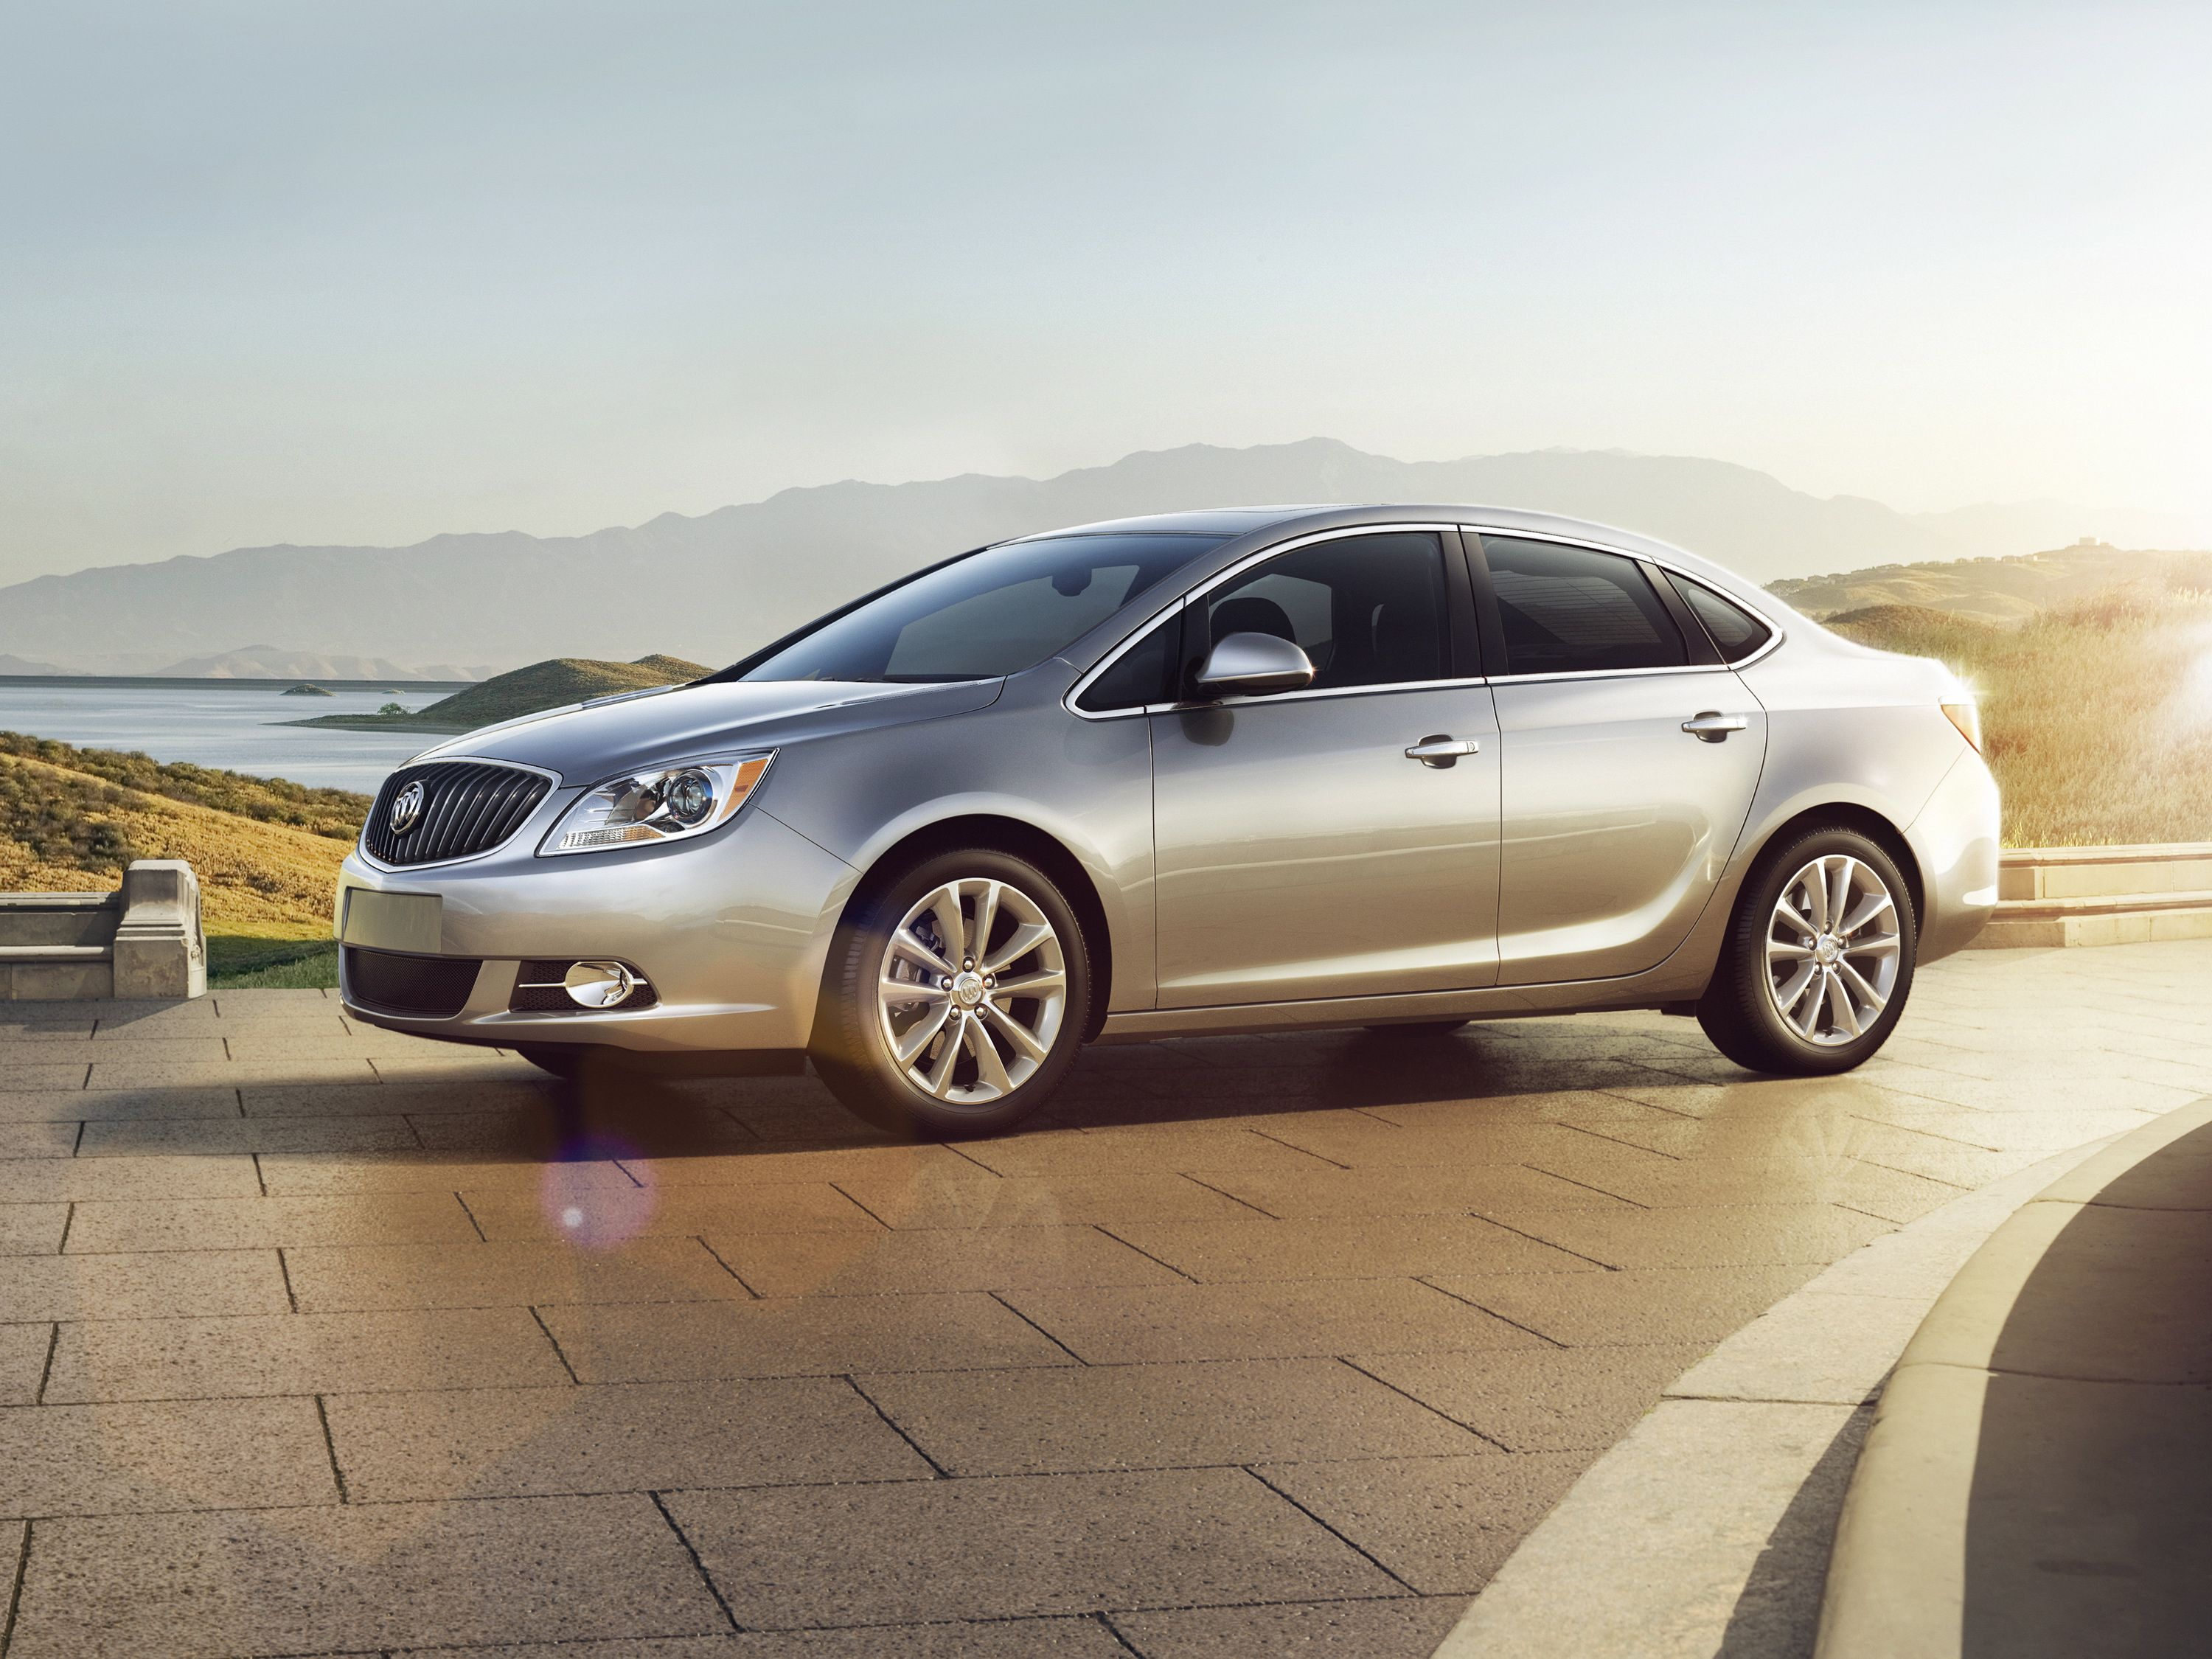 2016 Buick Verano Review Release Date And Price 2016 2017 Best Car Reviews Buick Verano Buick Car